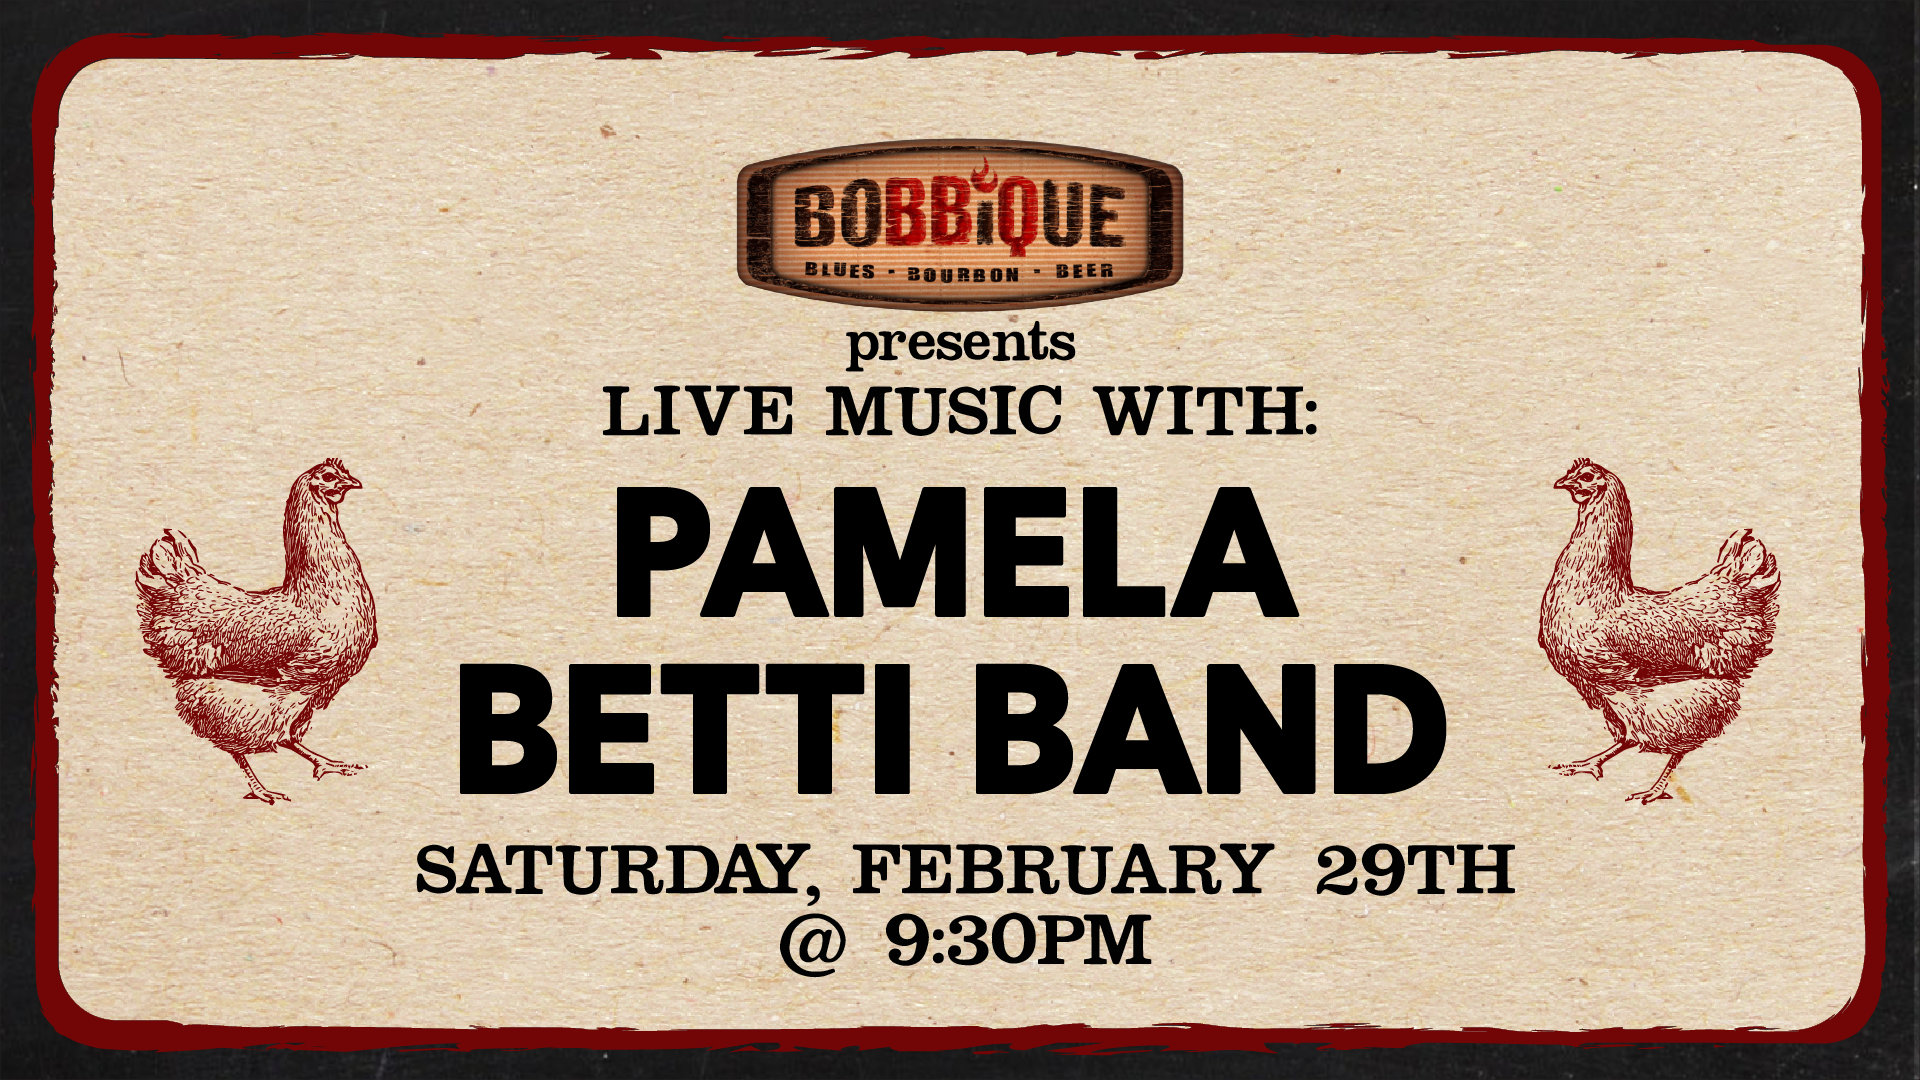 Live Music with Pamela Betti